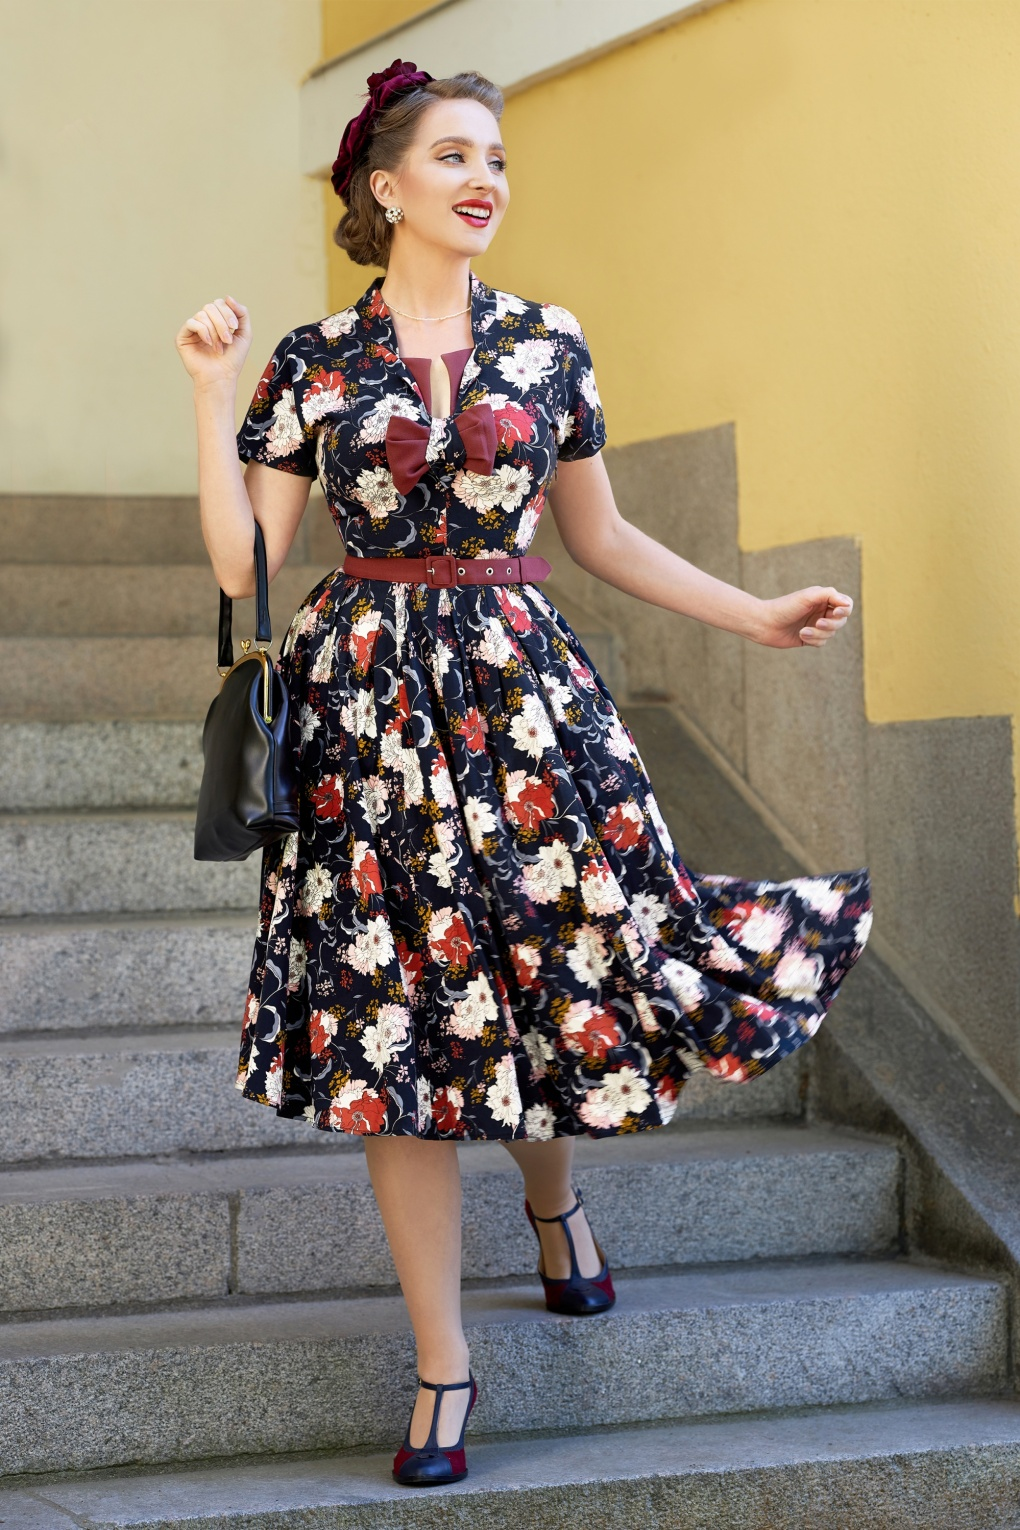 Pin Up Dresses | Pinup Clothing & Fashion 50s Adly Lee Floral Swing Dress in Navy £108.49 AT vintagedancer.com